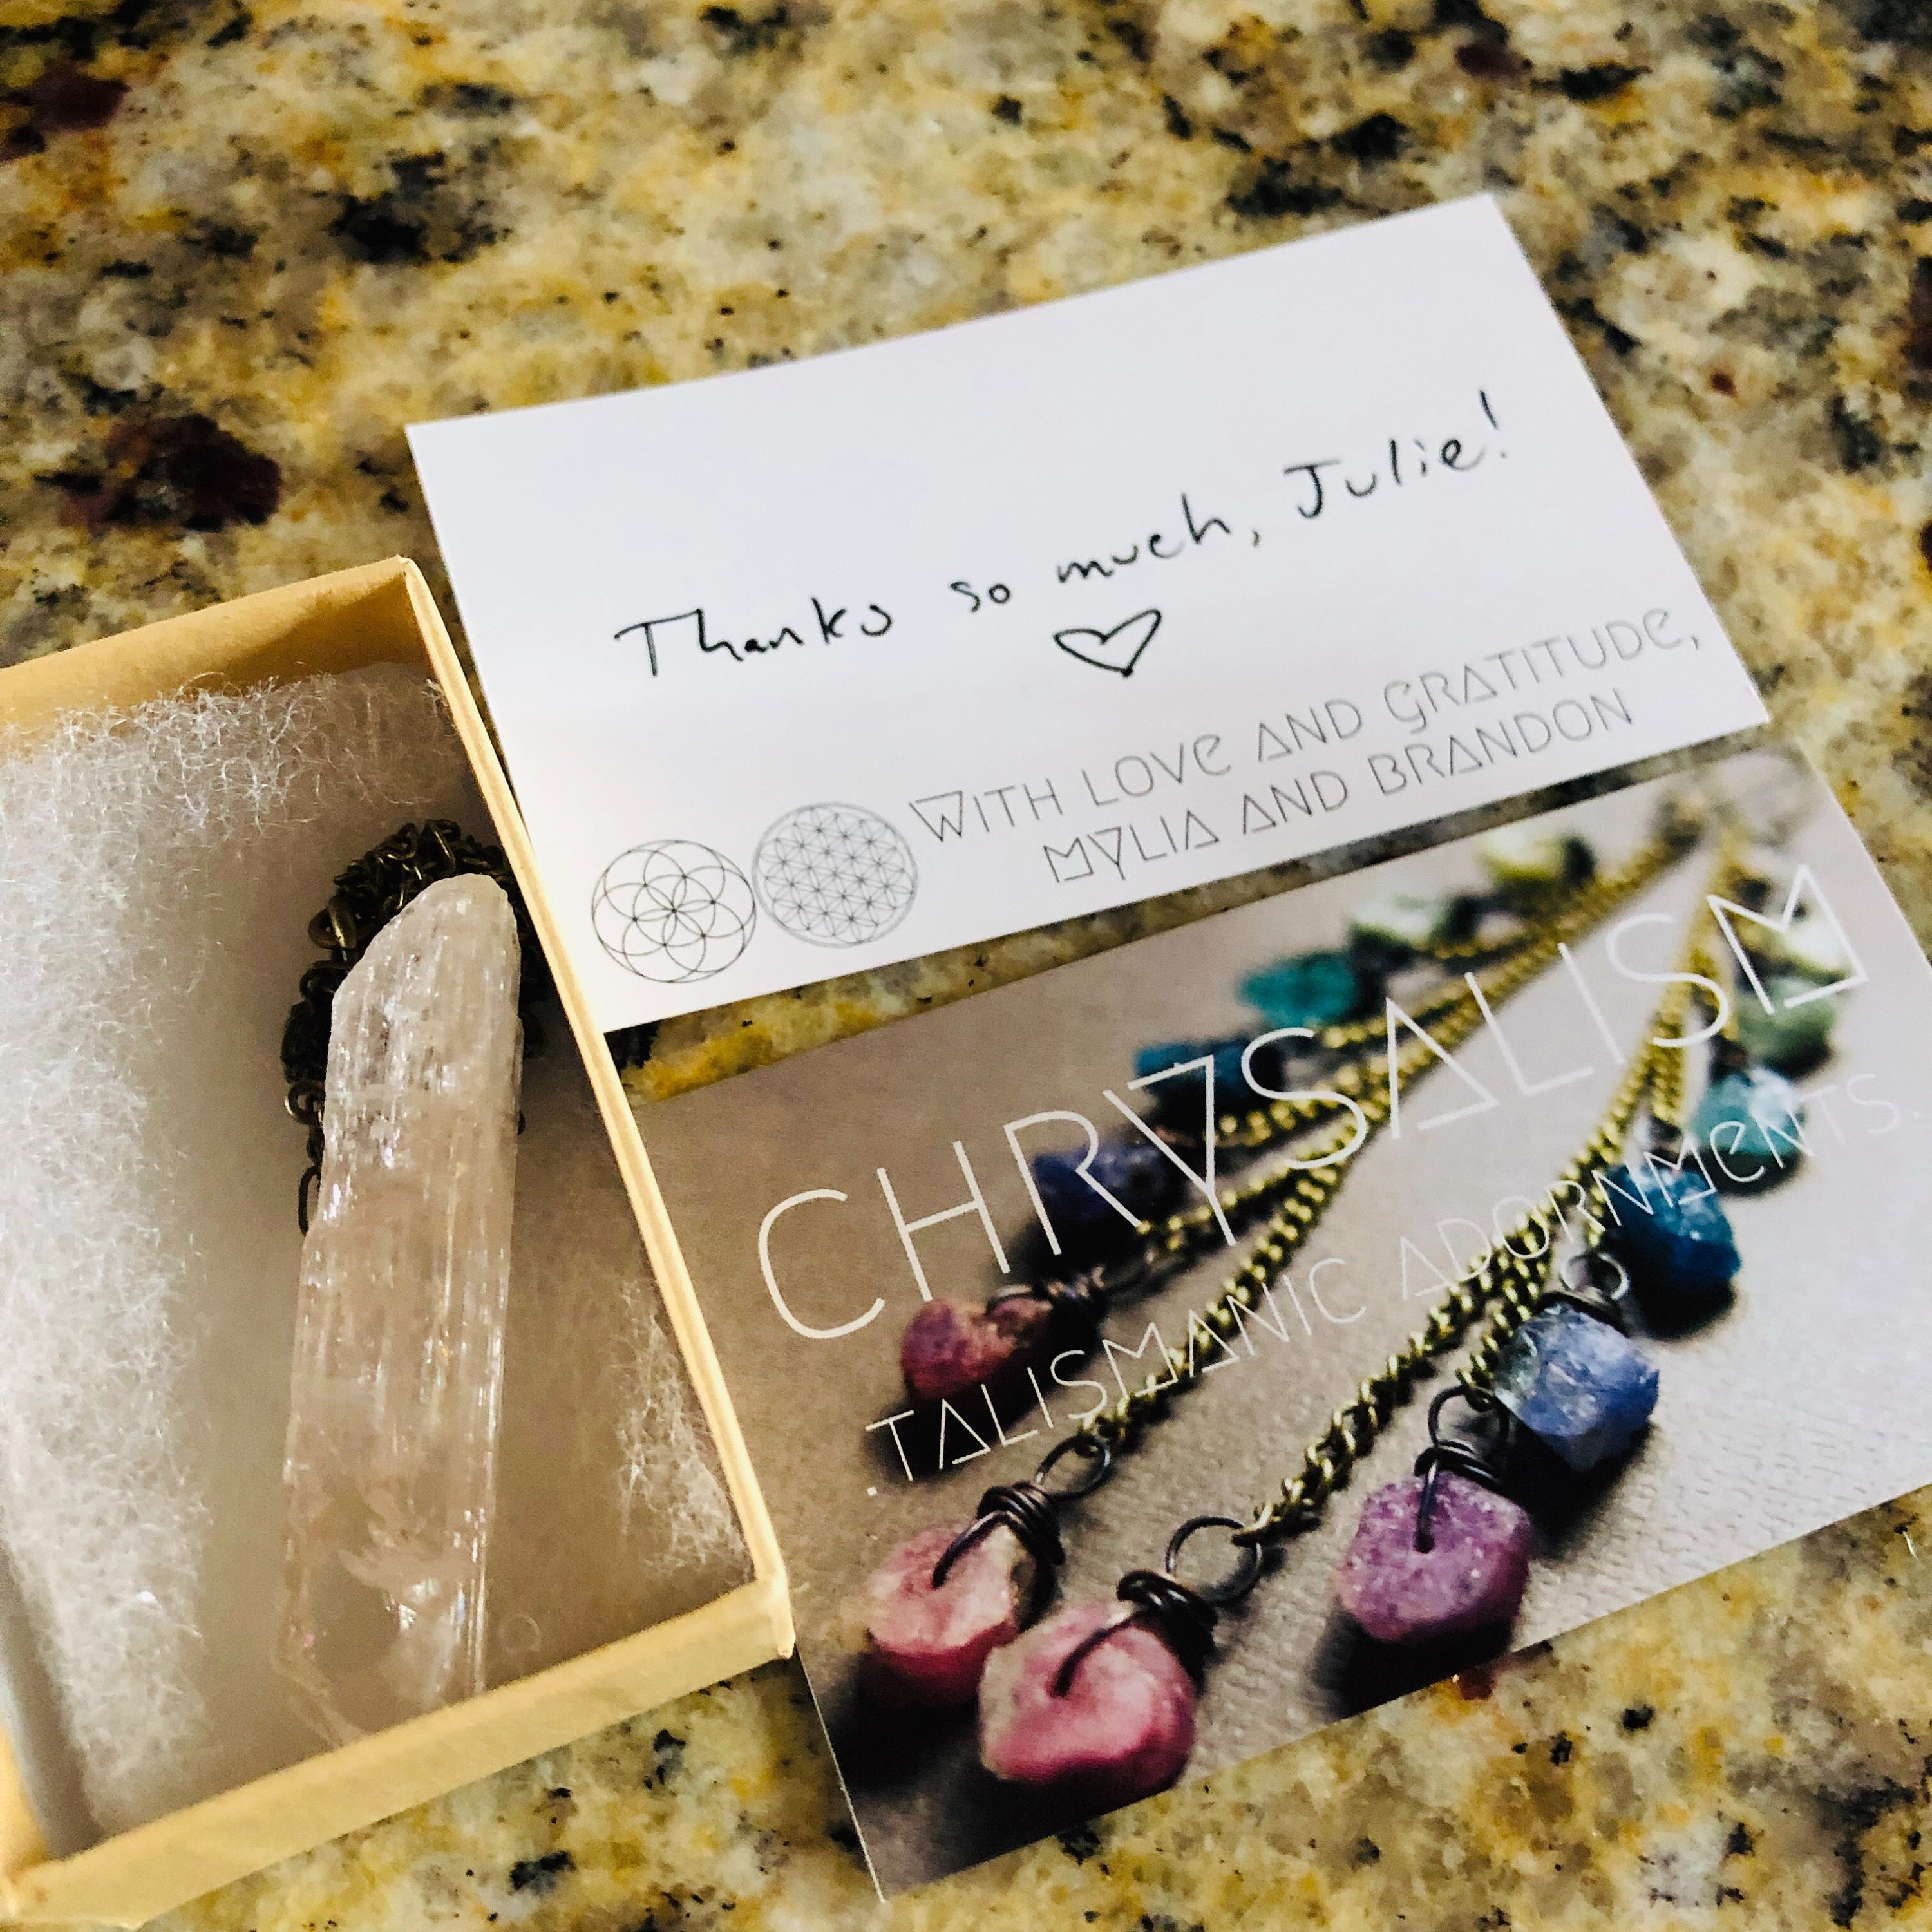 Julie Kate added a photo of their purchase